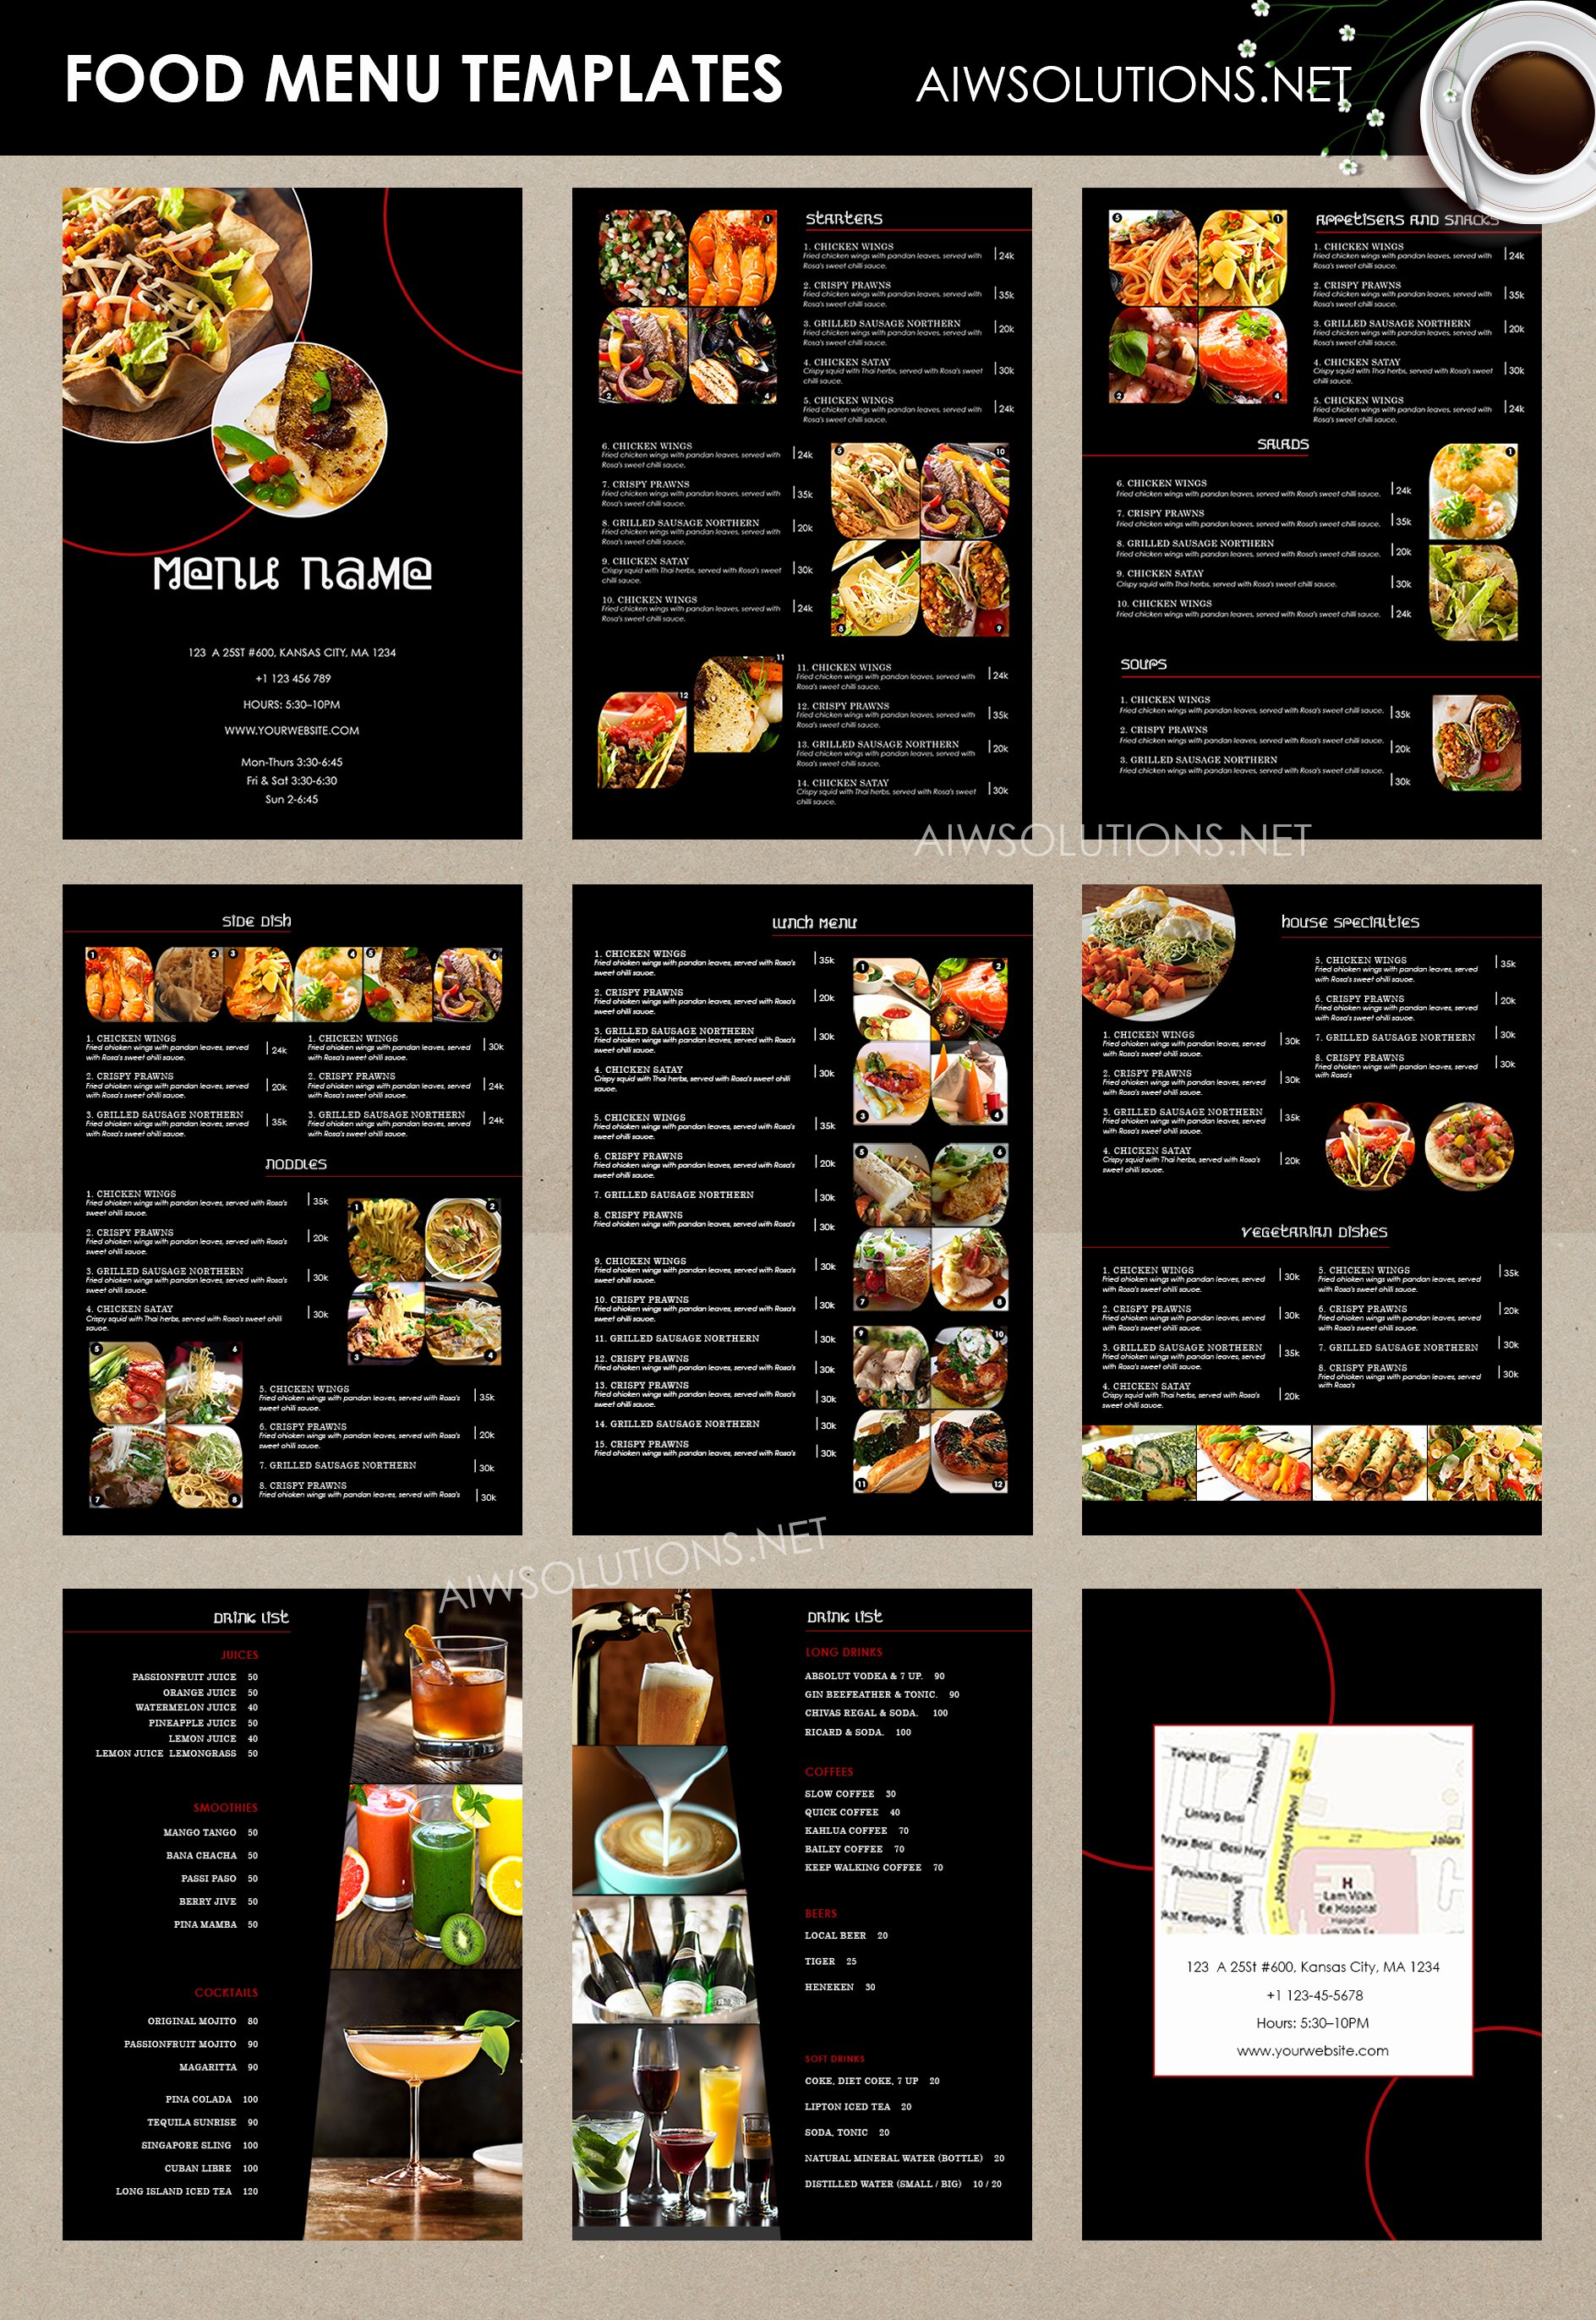 Free Bar Menu Templates Beautiful Design & Templates Menu Templates Wedding Menu Food